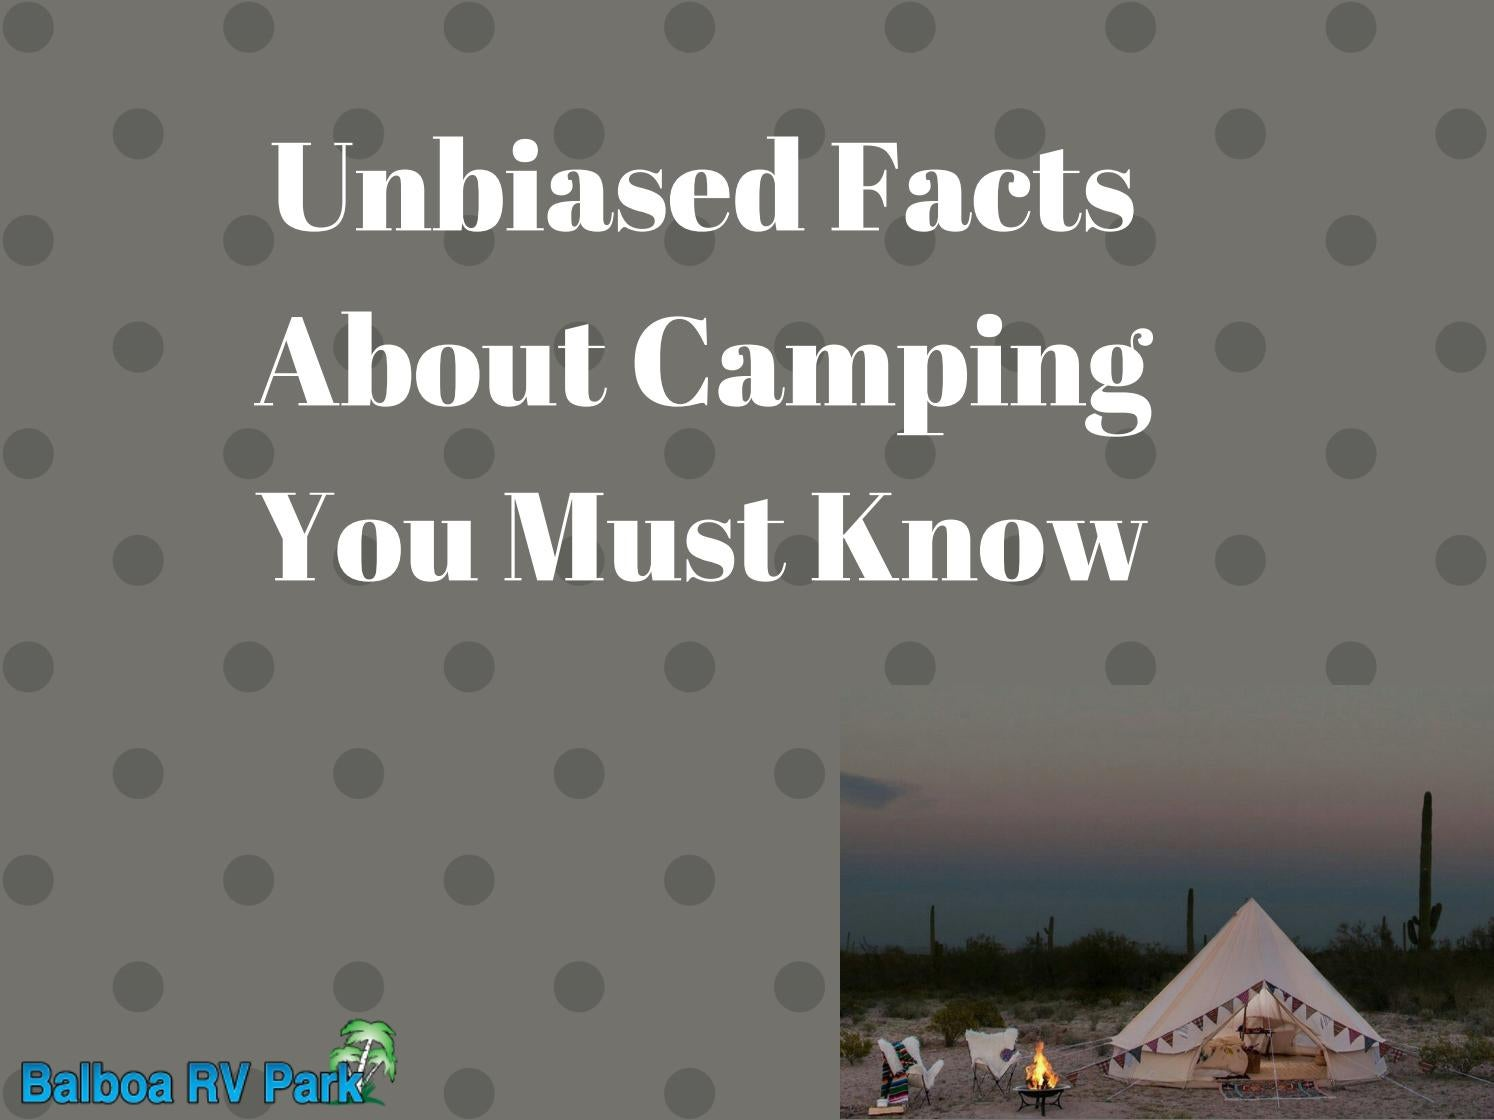 Unbiased facts about camping you must know by JinPak - issuu